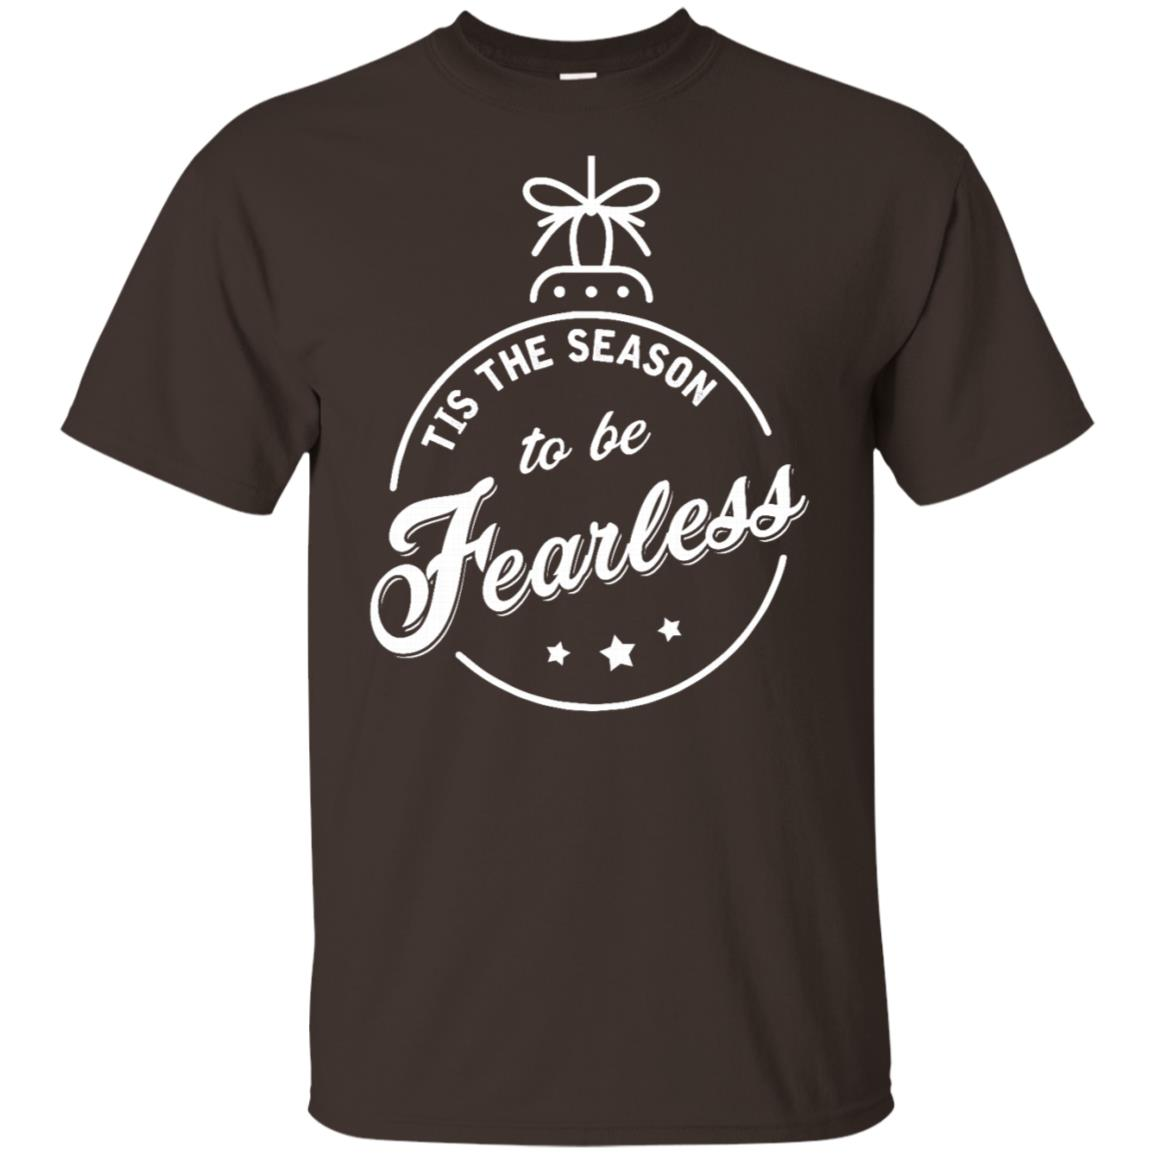 Tis The Season To Be Fearless Unisex Short Sleeve